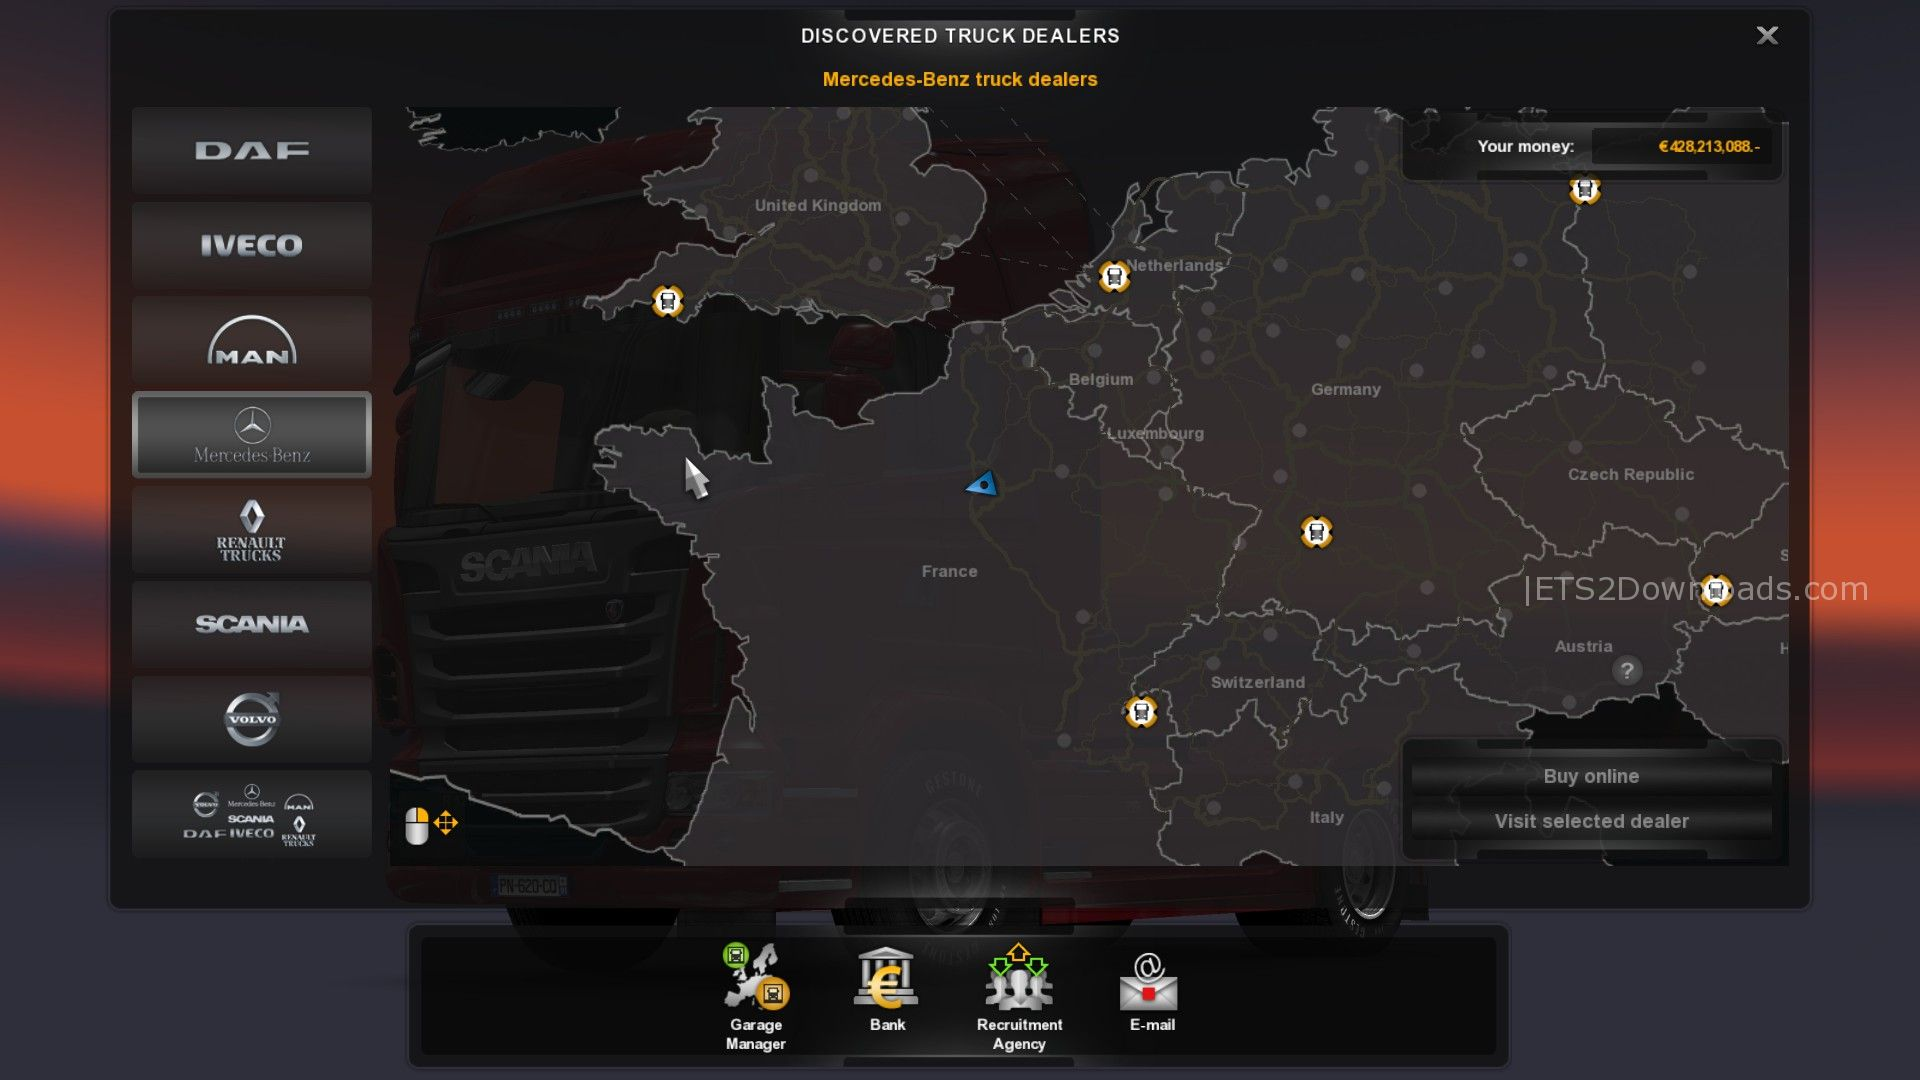 Euro truck simulator 2 update with mercedes benz for Mercedes benz dealer locations